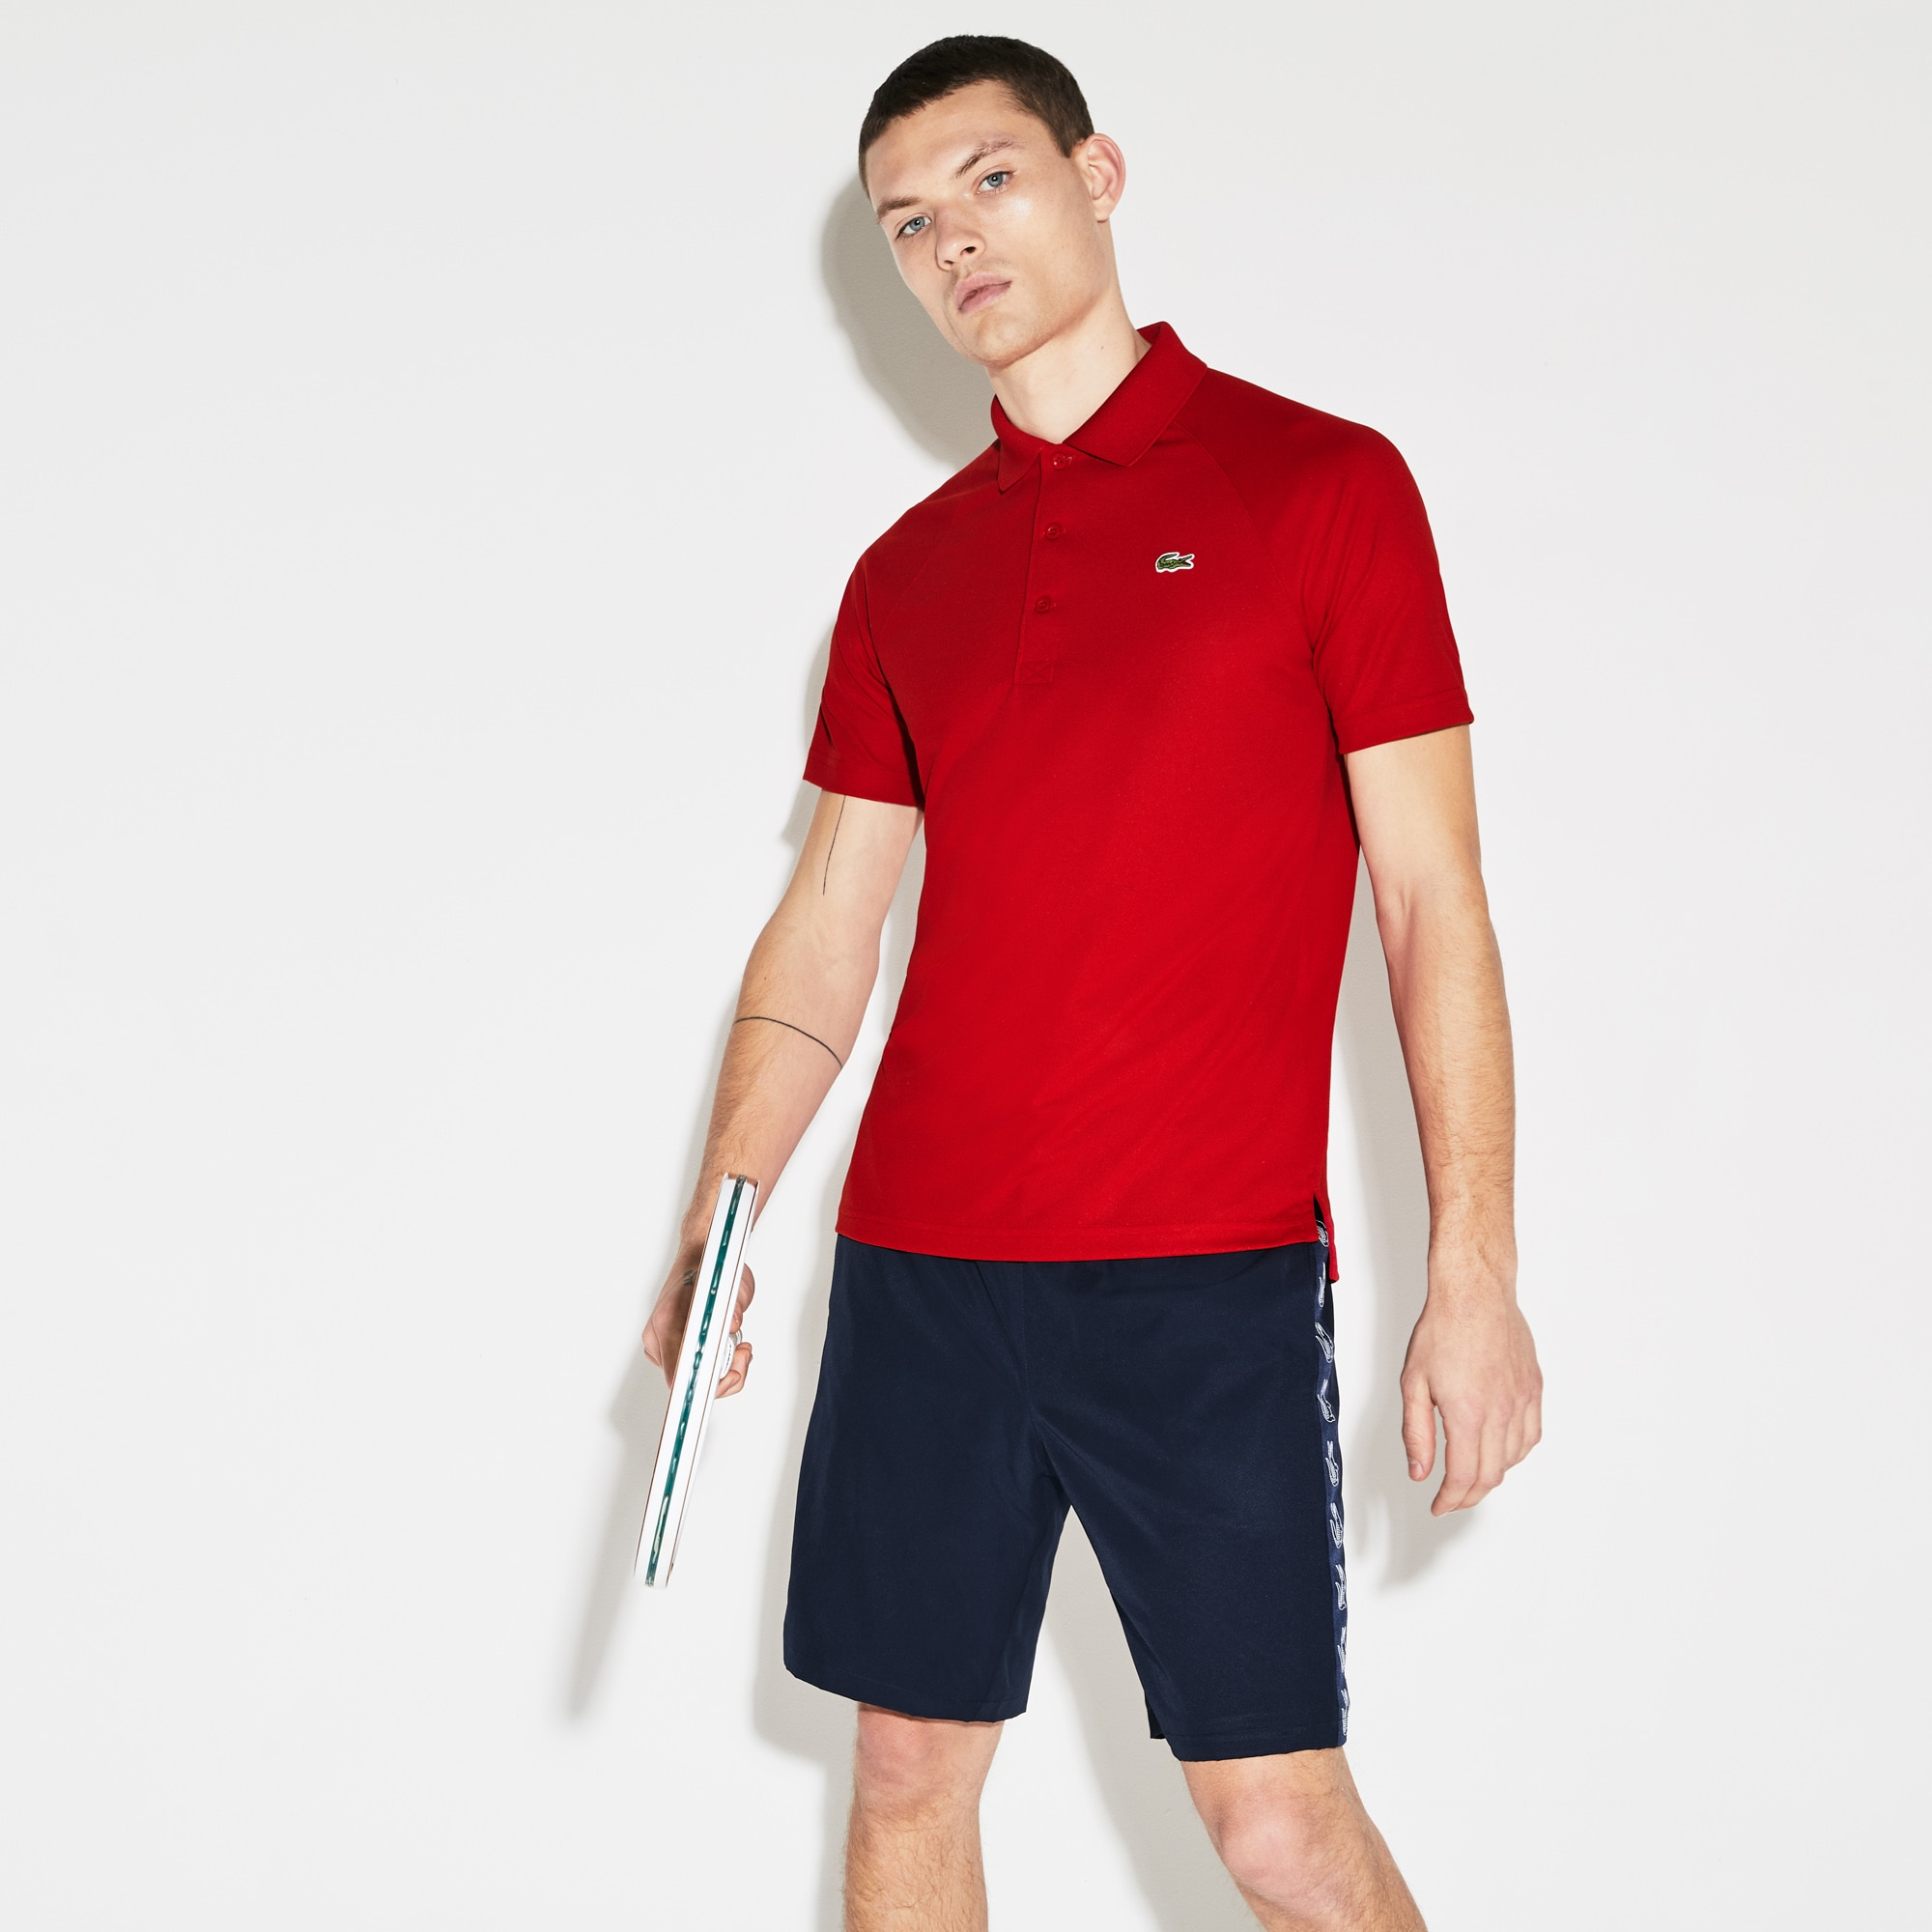 Men's SPORT Breathable Anti-UV Piqué Polo